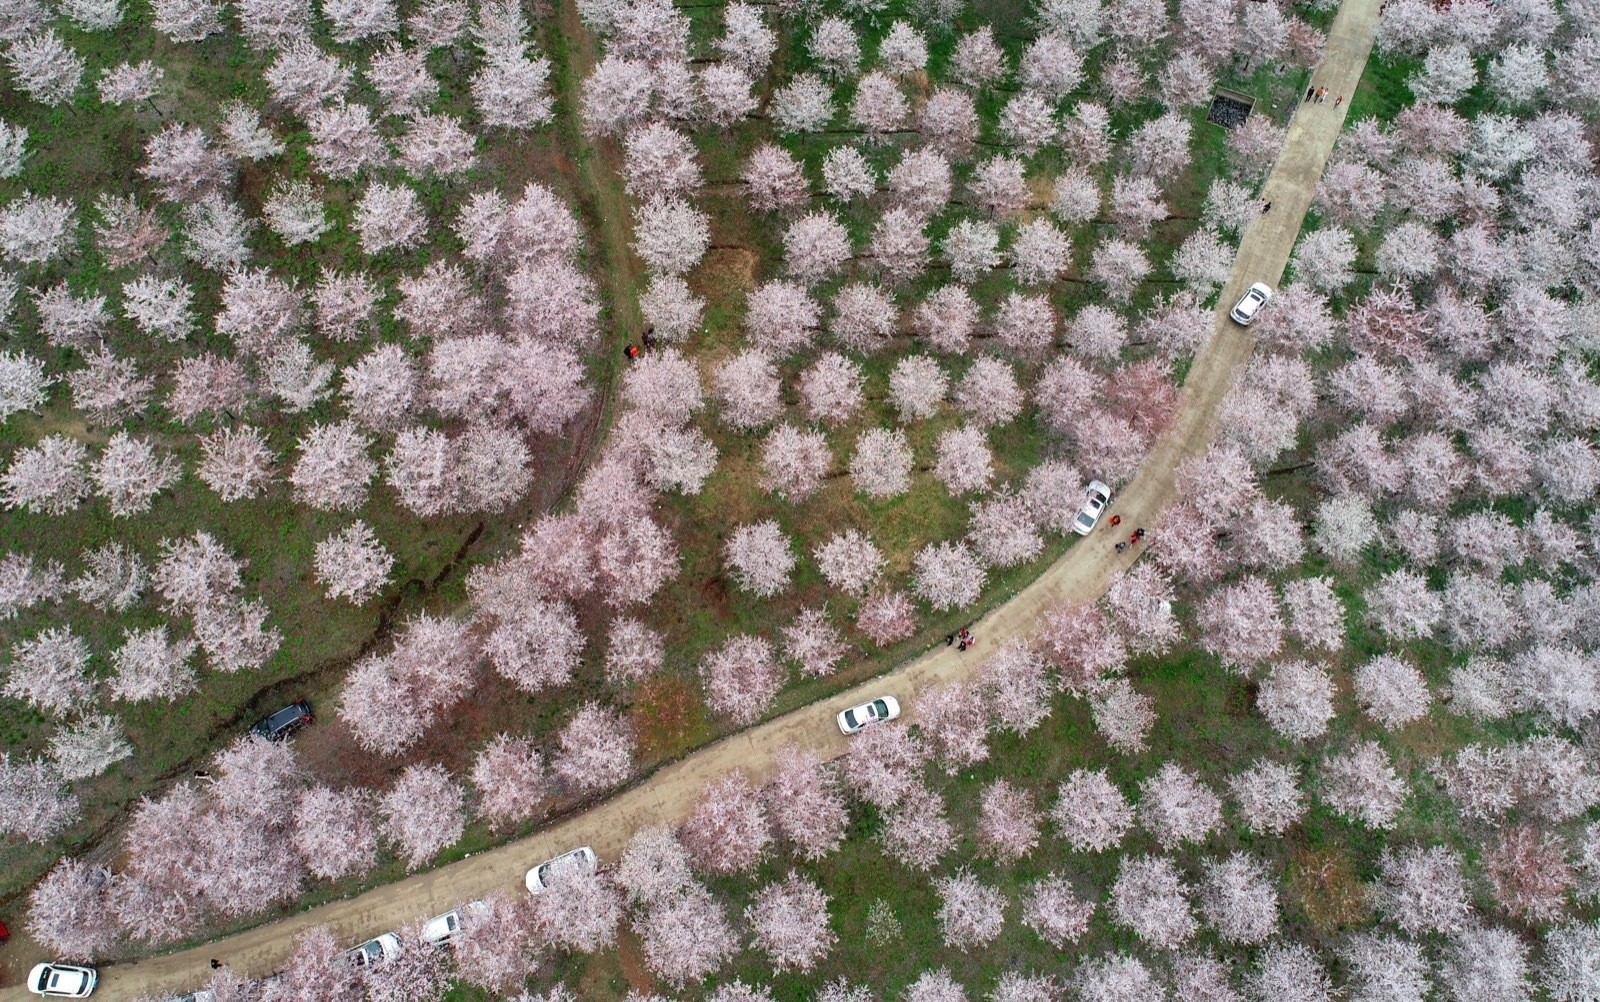 Planet Lockdown, Pictures of the Week and Cherry Blossom Season